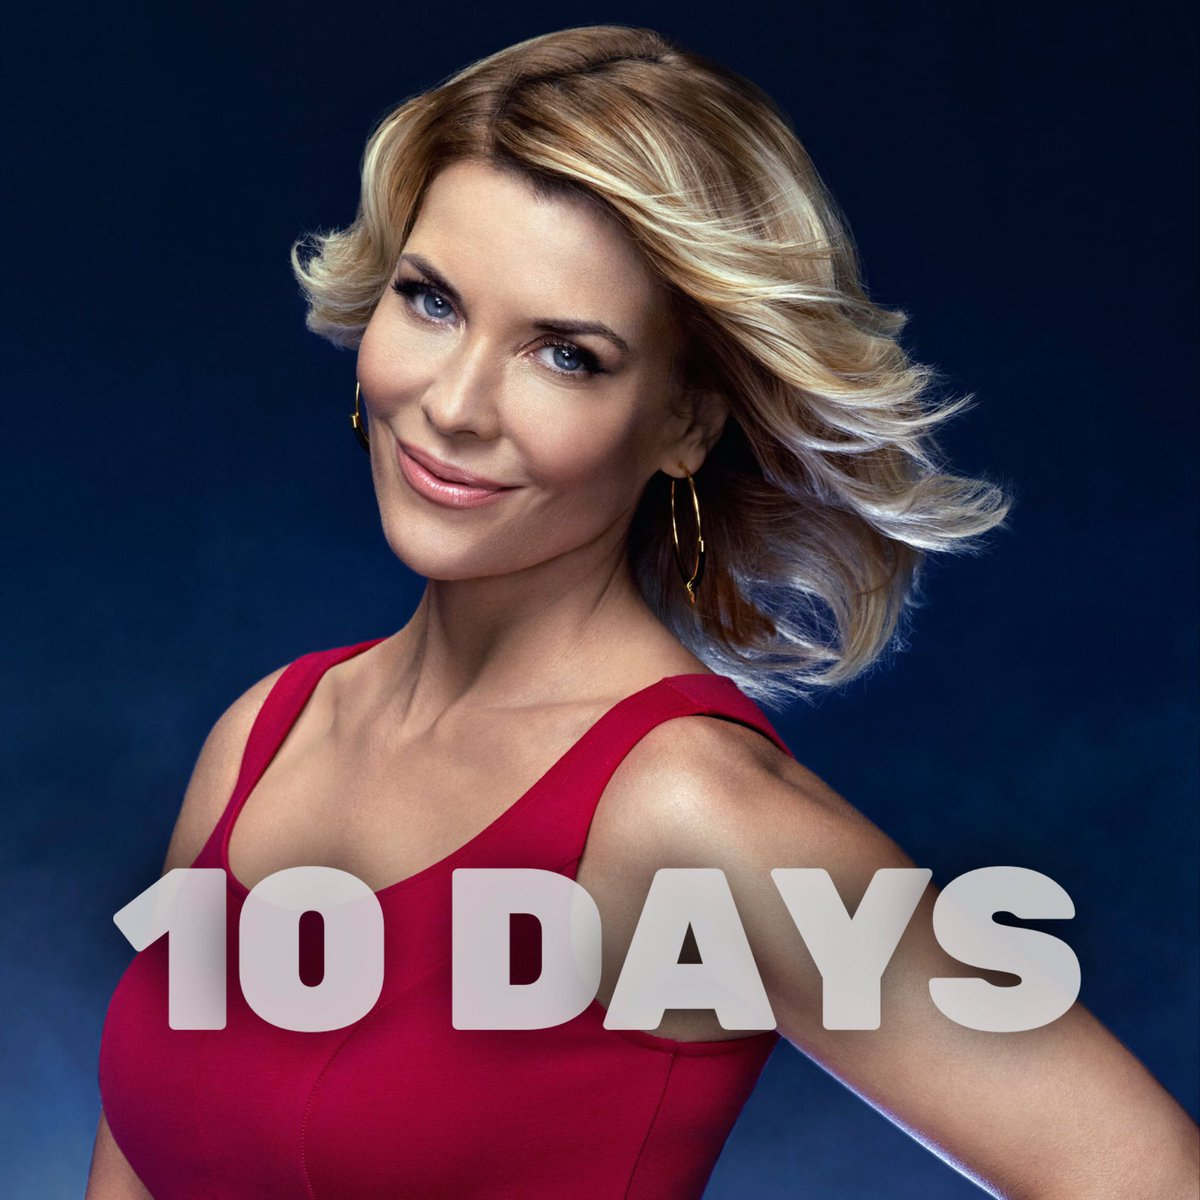 Only 10 days before the magic is back!  #FaceOff #DivideAndConquer premieres 6/13/17 at 9/8c on @Syfy https://t.co/pCQ2tS1pB1